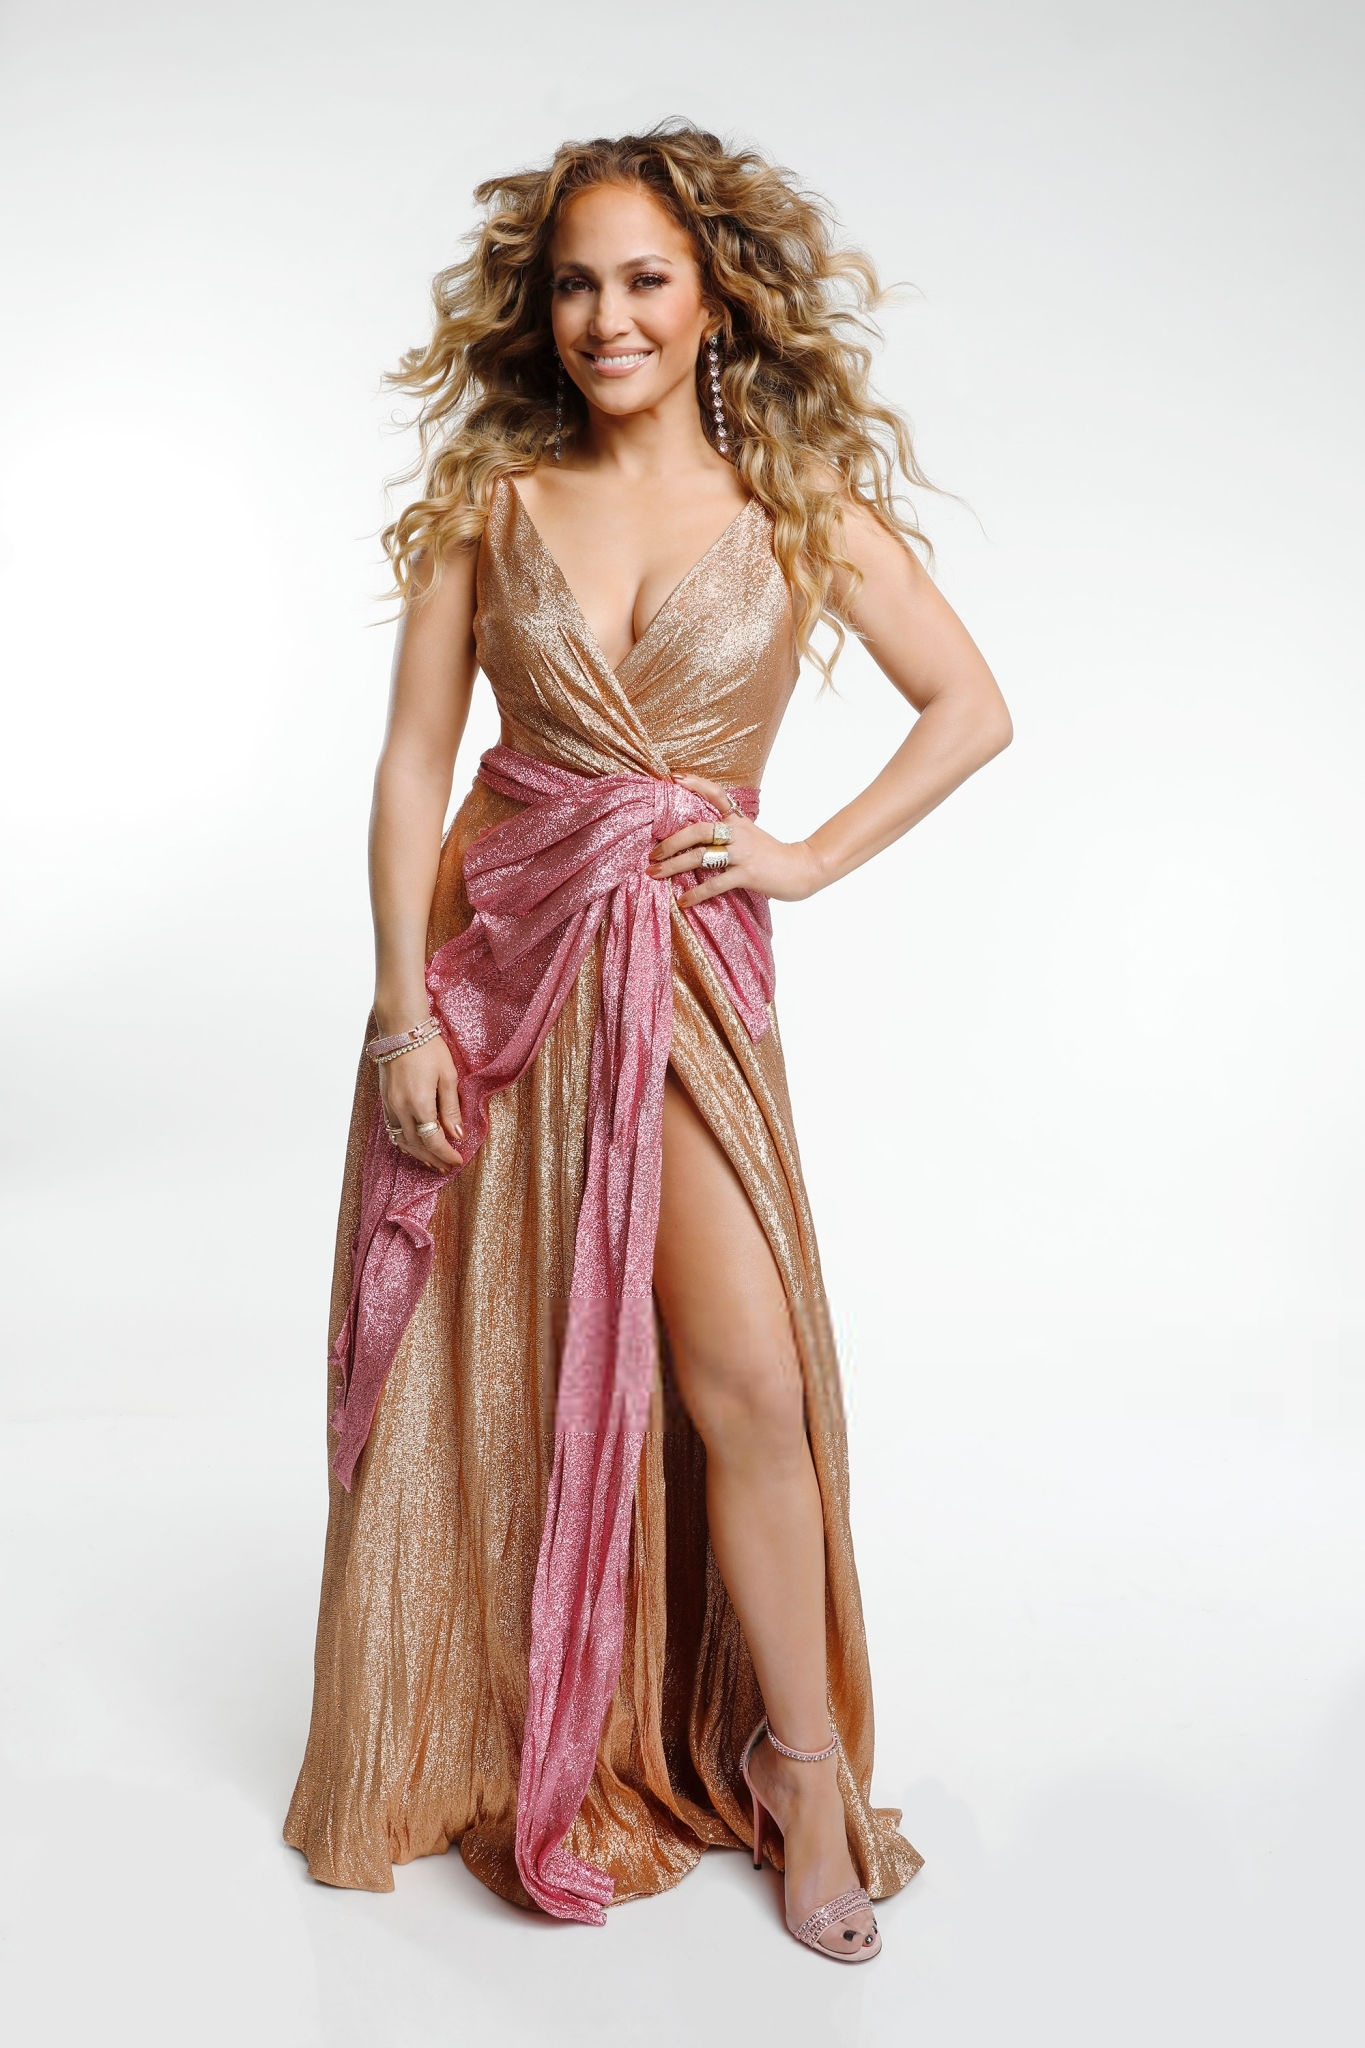 Jennifer Lopez photo #865567